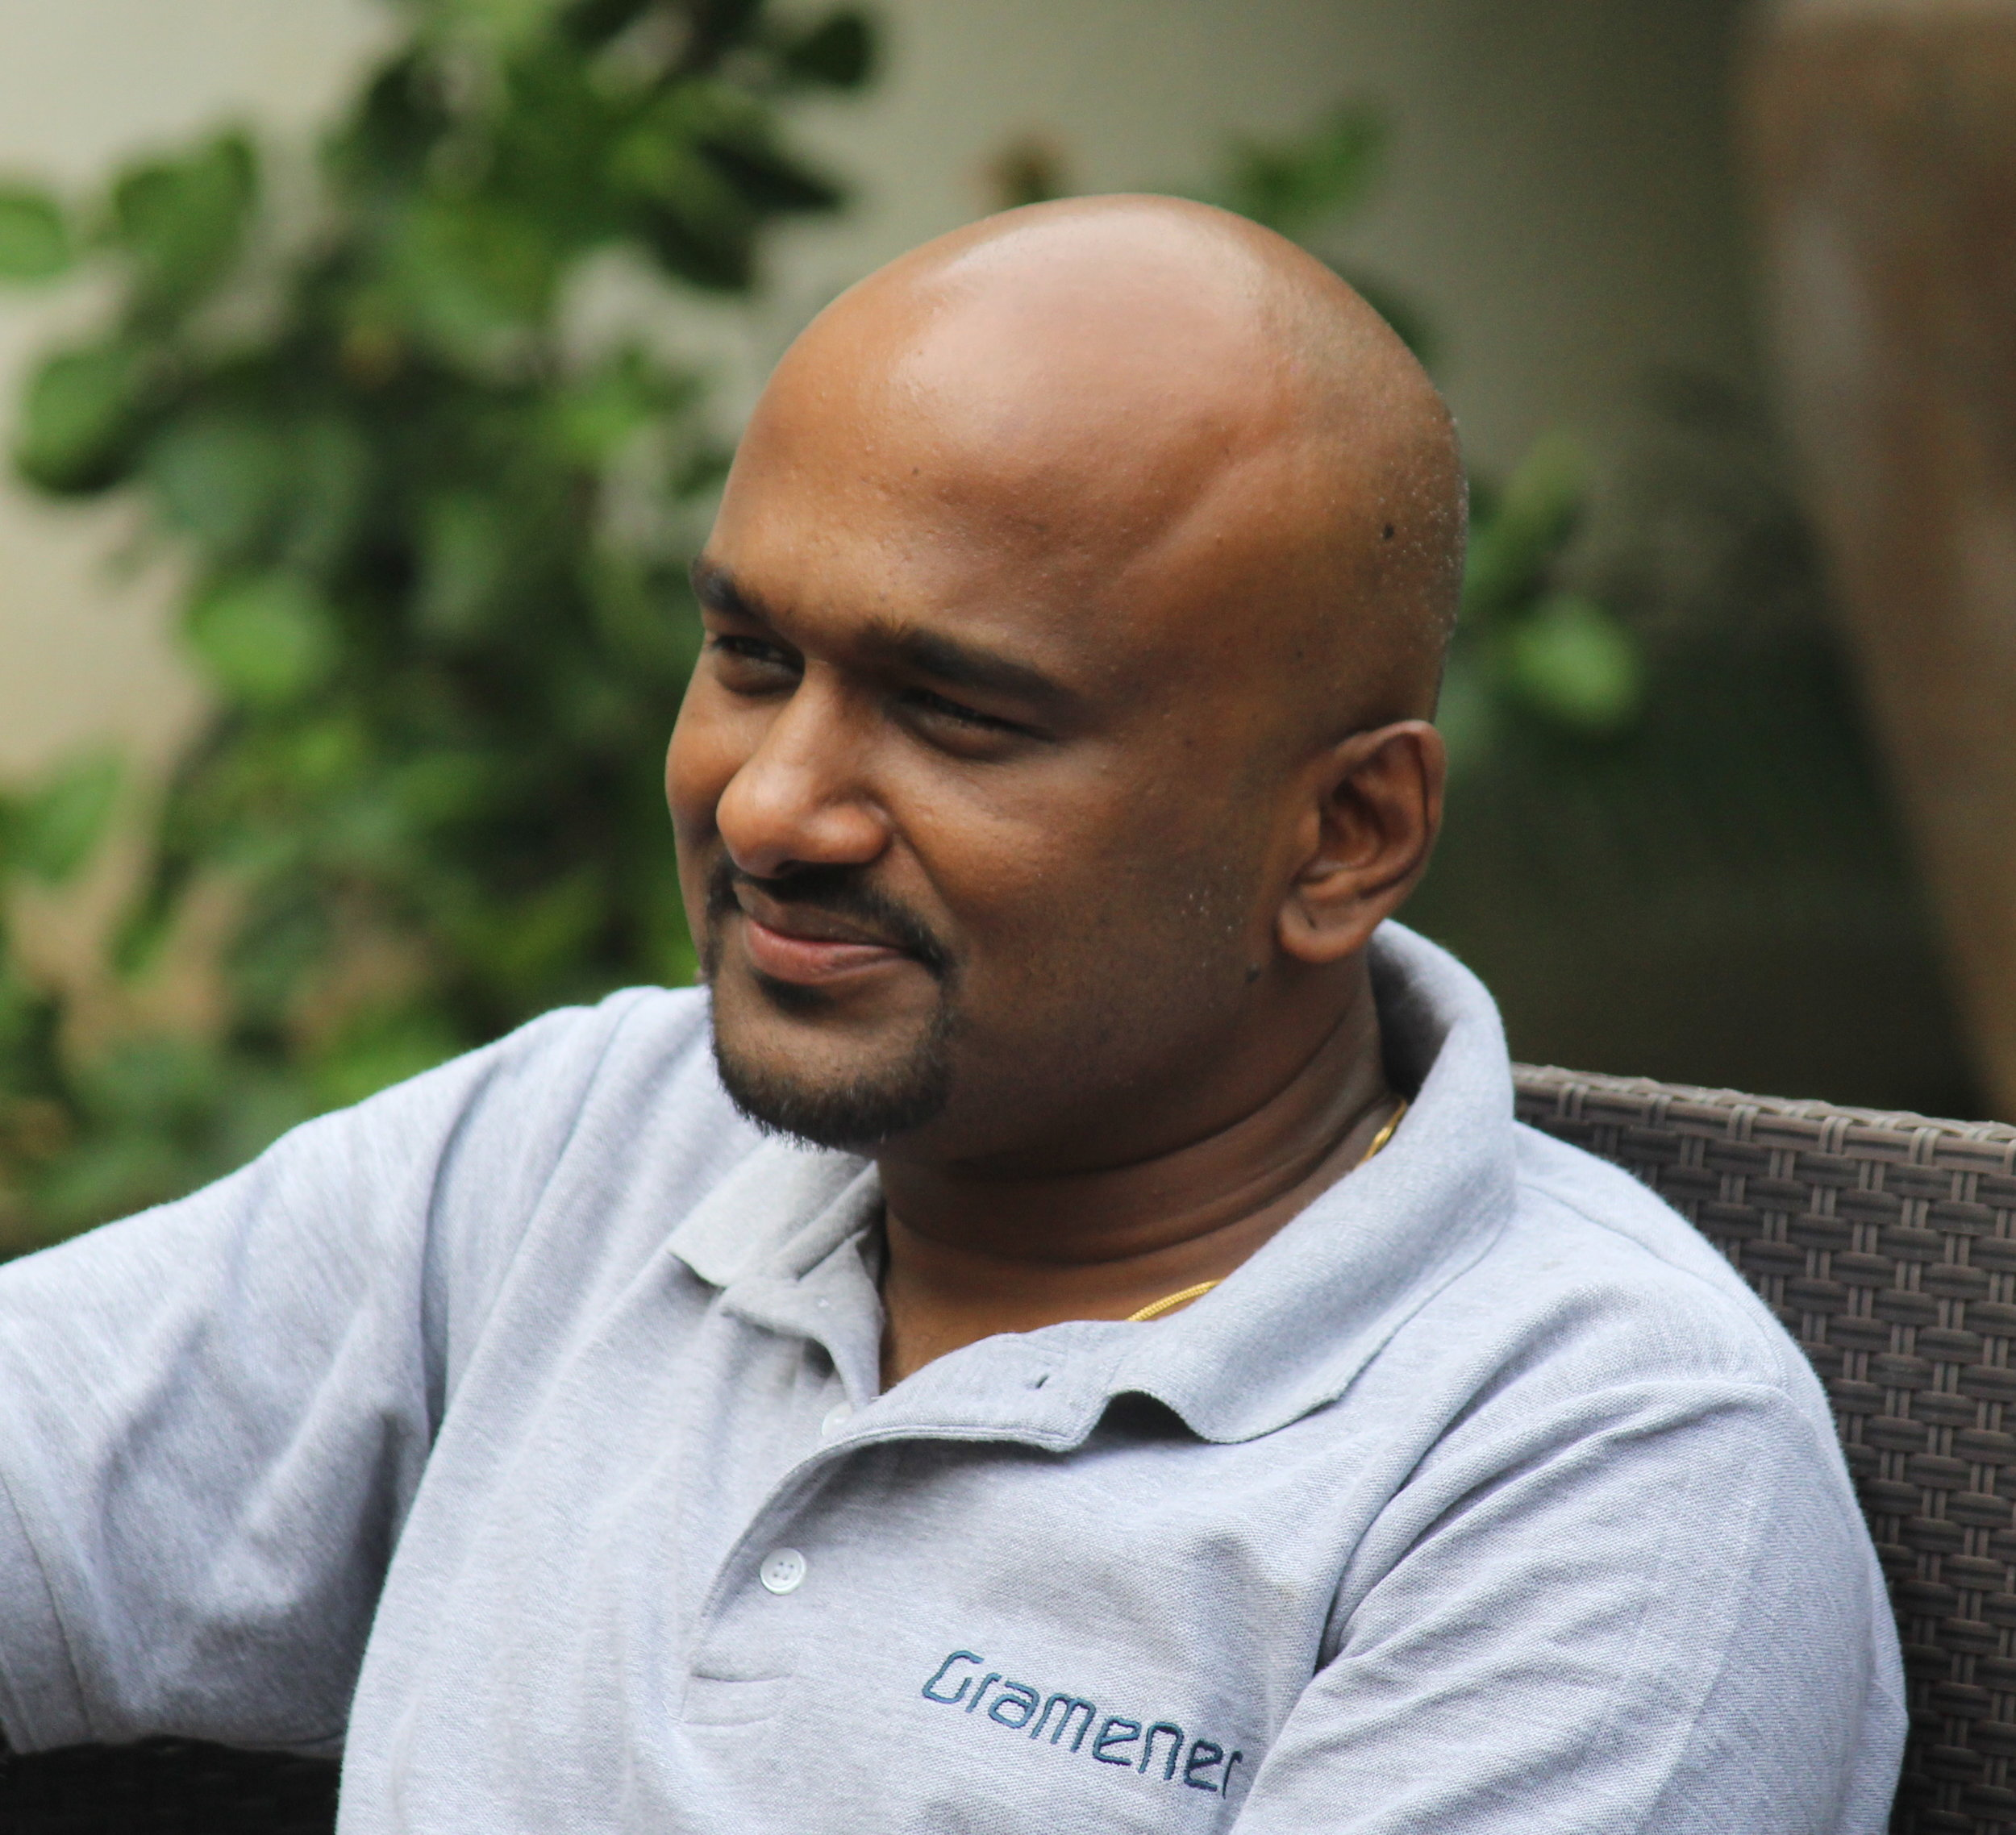 Ganes Kesari - Co-founder and Head of Analytics at GramenerGanes co-founded Gramener (gramener.com), an award-winning Data science company, where he heads Analytics and Innovation. Ganes has advised hundreds of enterprises like E&Y, Deloitte, Novartis on their analytics journey and has helped several NGOs such as the Gates Foundation adopt data science and AI models in their conservation efforts. He is passionate about the confluence of machine learning, information design, and business value. Ganes is a passionate writer, on an endeavor to simplify data science and help everyone understand its true potential. His articles have a wide following and he's recognized as a top writer in 'Artificial Intelligence' on Medium. (medium.com/@kesari).He has provided corporate training to large clients in the areas of Data analytics & Visualization and teaches in courses run by leading universities.